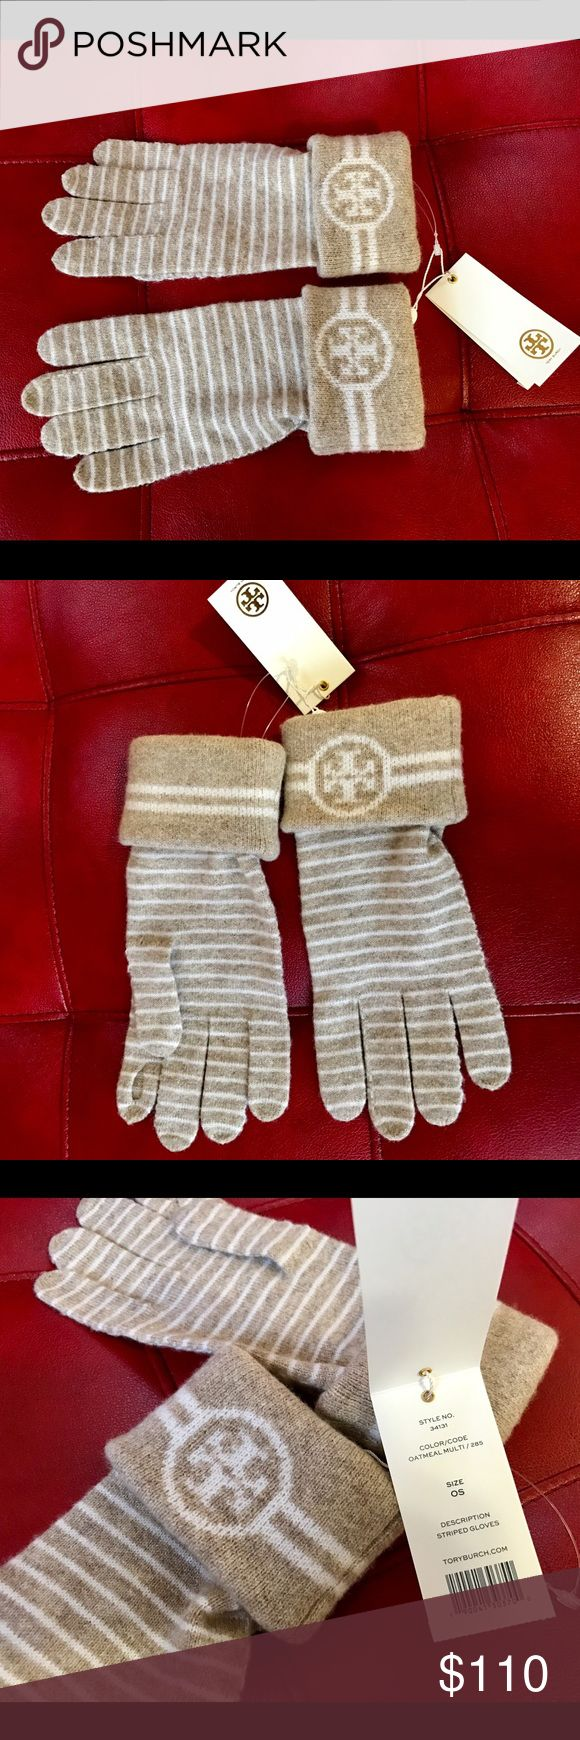 Tory Burch Striped Merino wool Gloves Brand new with tag in Oatmeal Multi colour  95% Merino wool  3% Polyamide 2% Elastane  Retail price is $125 plus taxes Tory Burch Accessories Gloves & Mittens